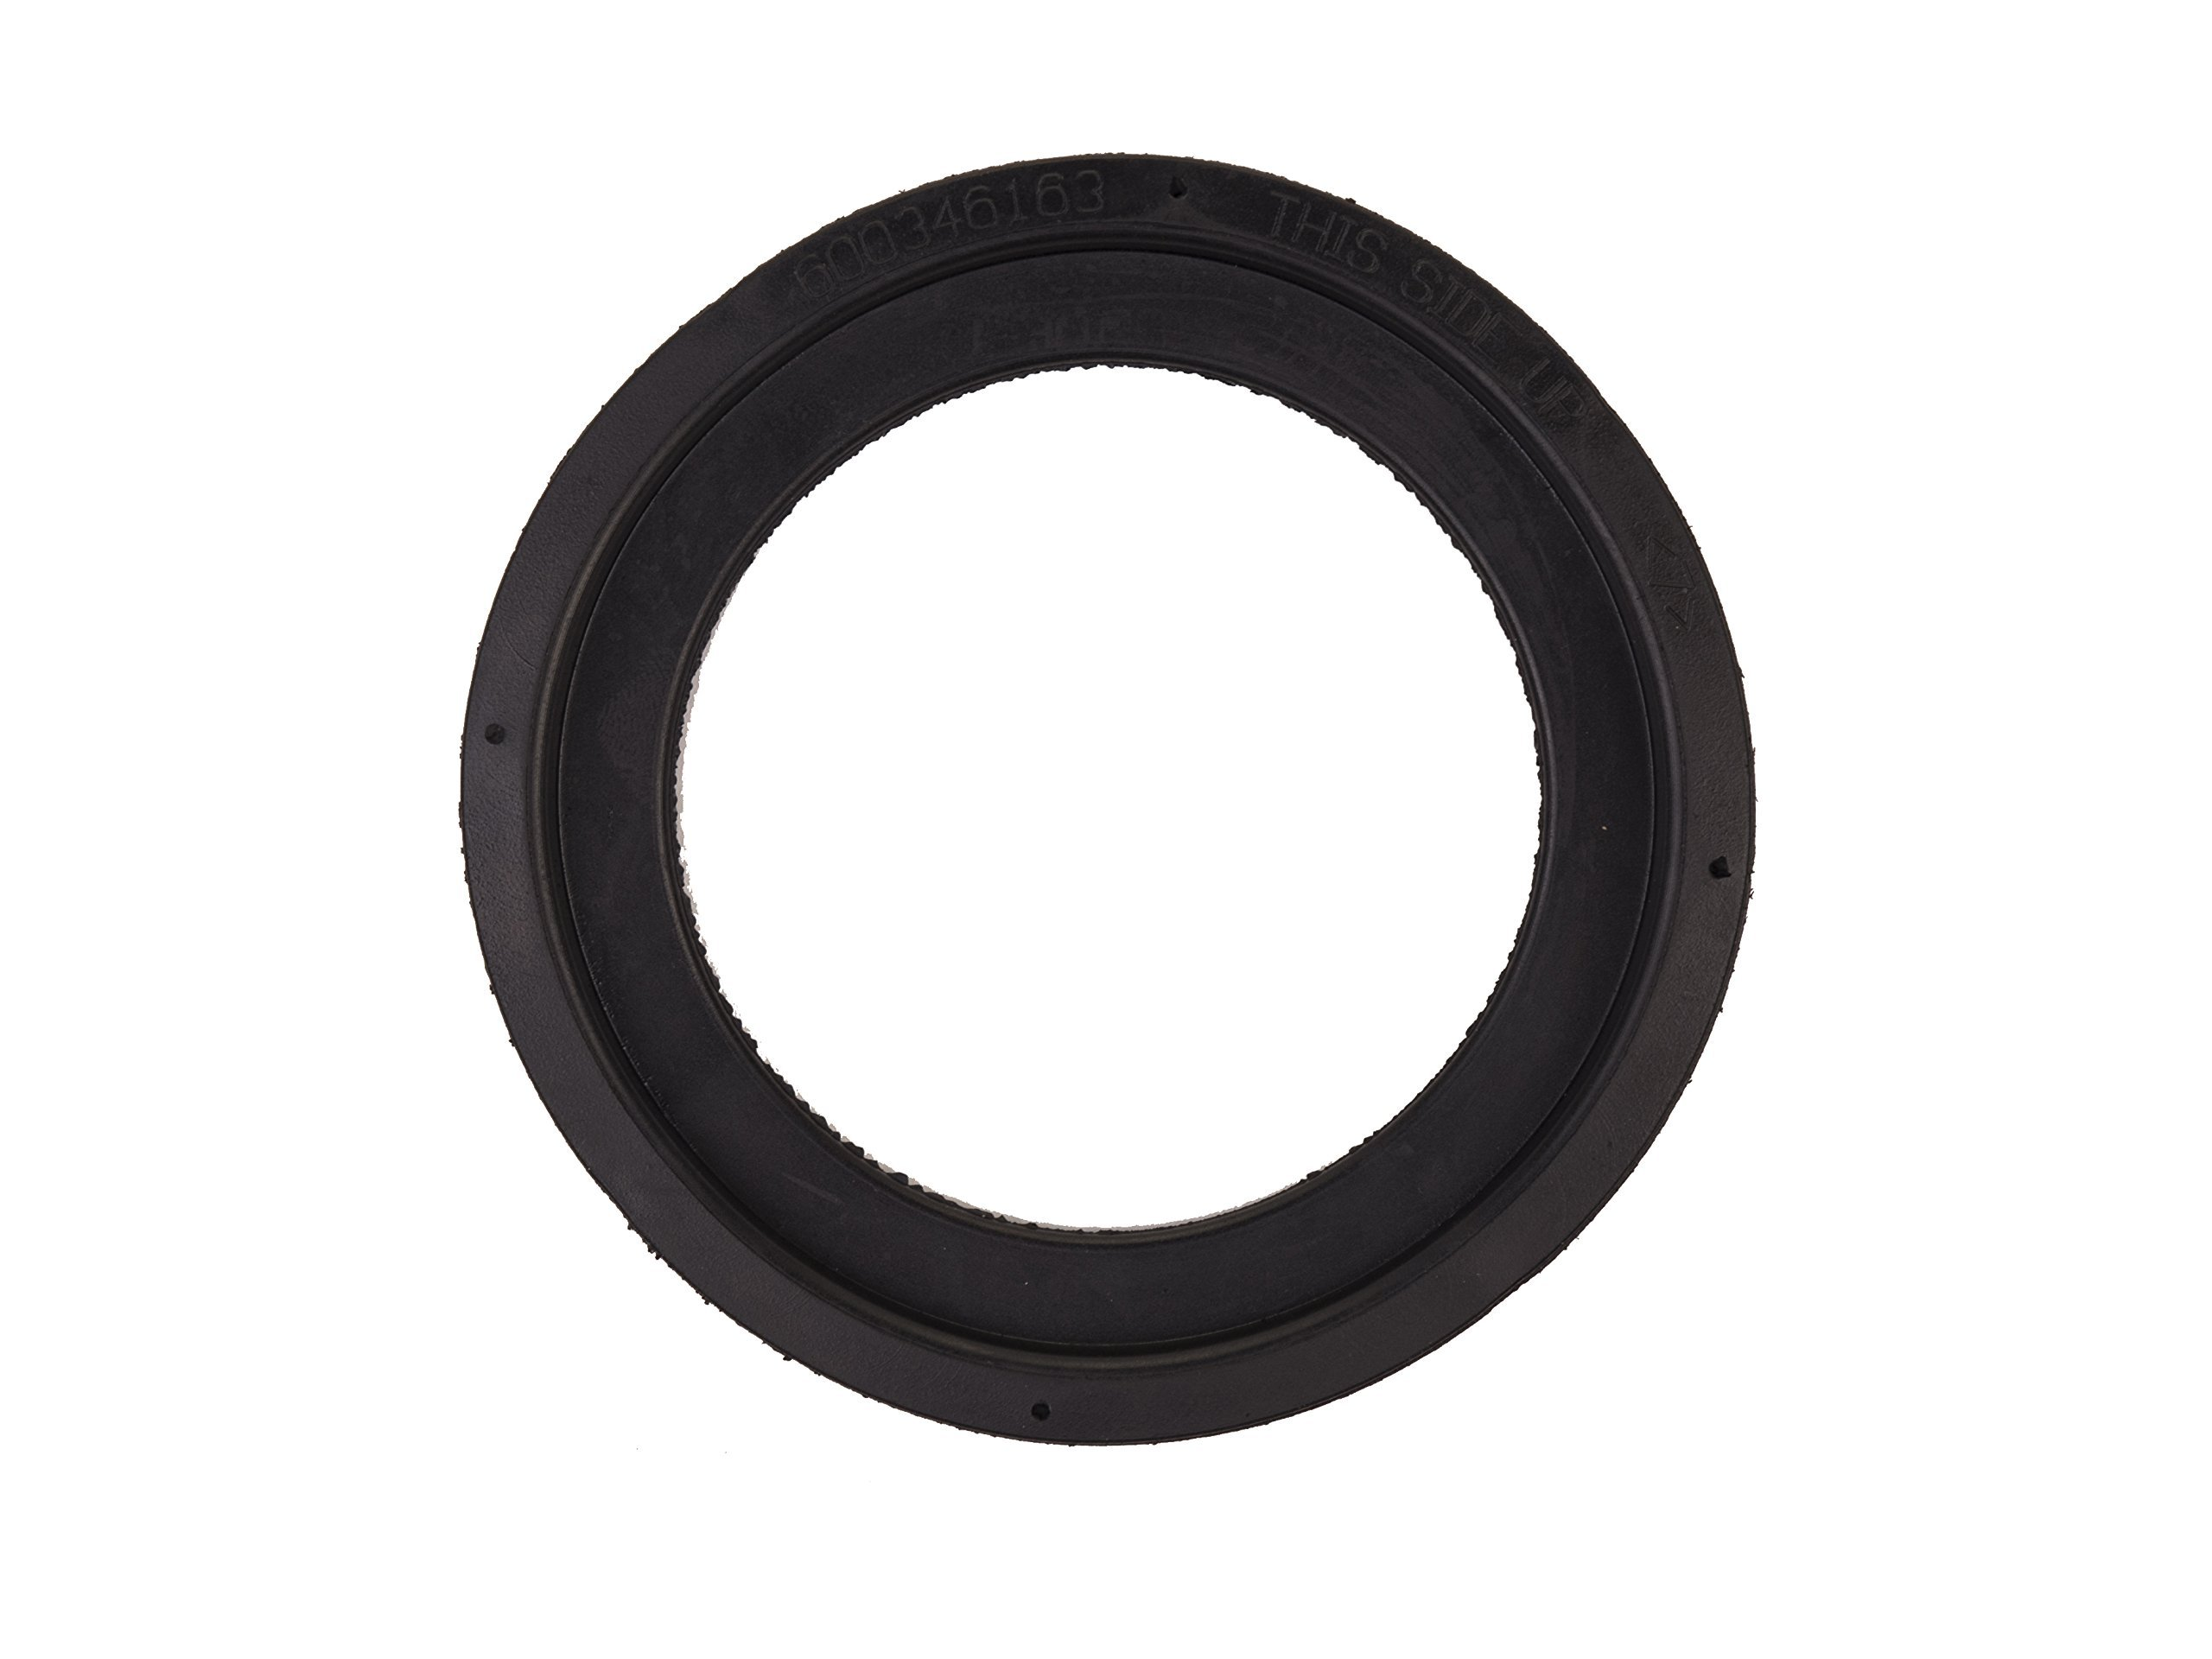 Dometic Sanitation 385311658 Kit Flush Ball Seal F/310 by Dometic